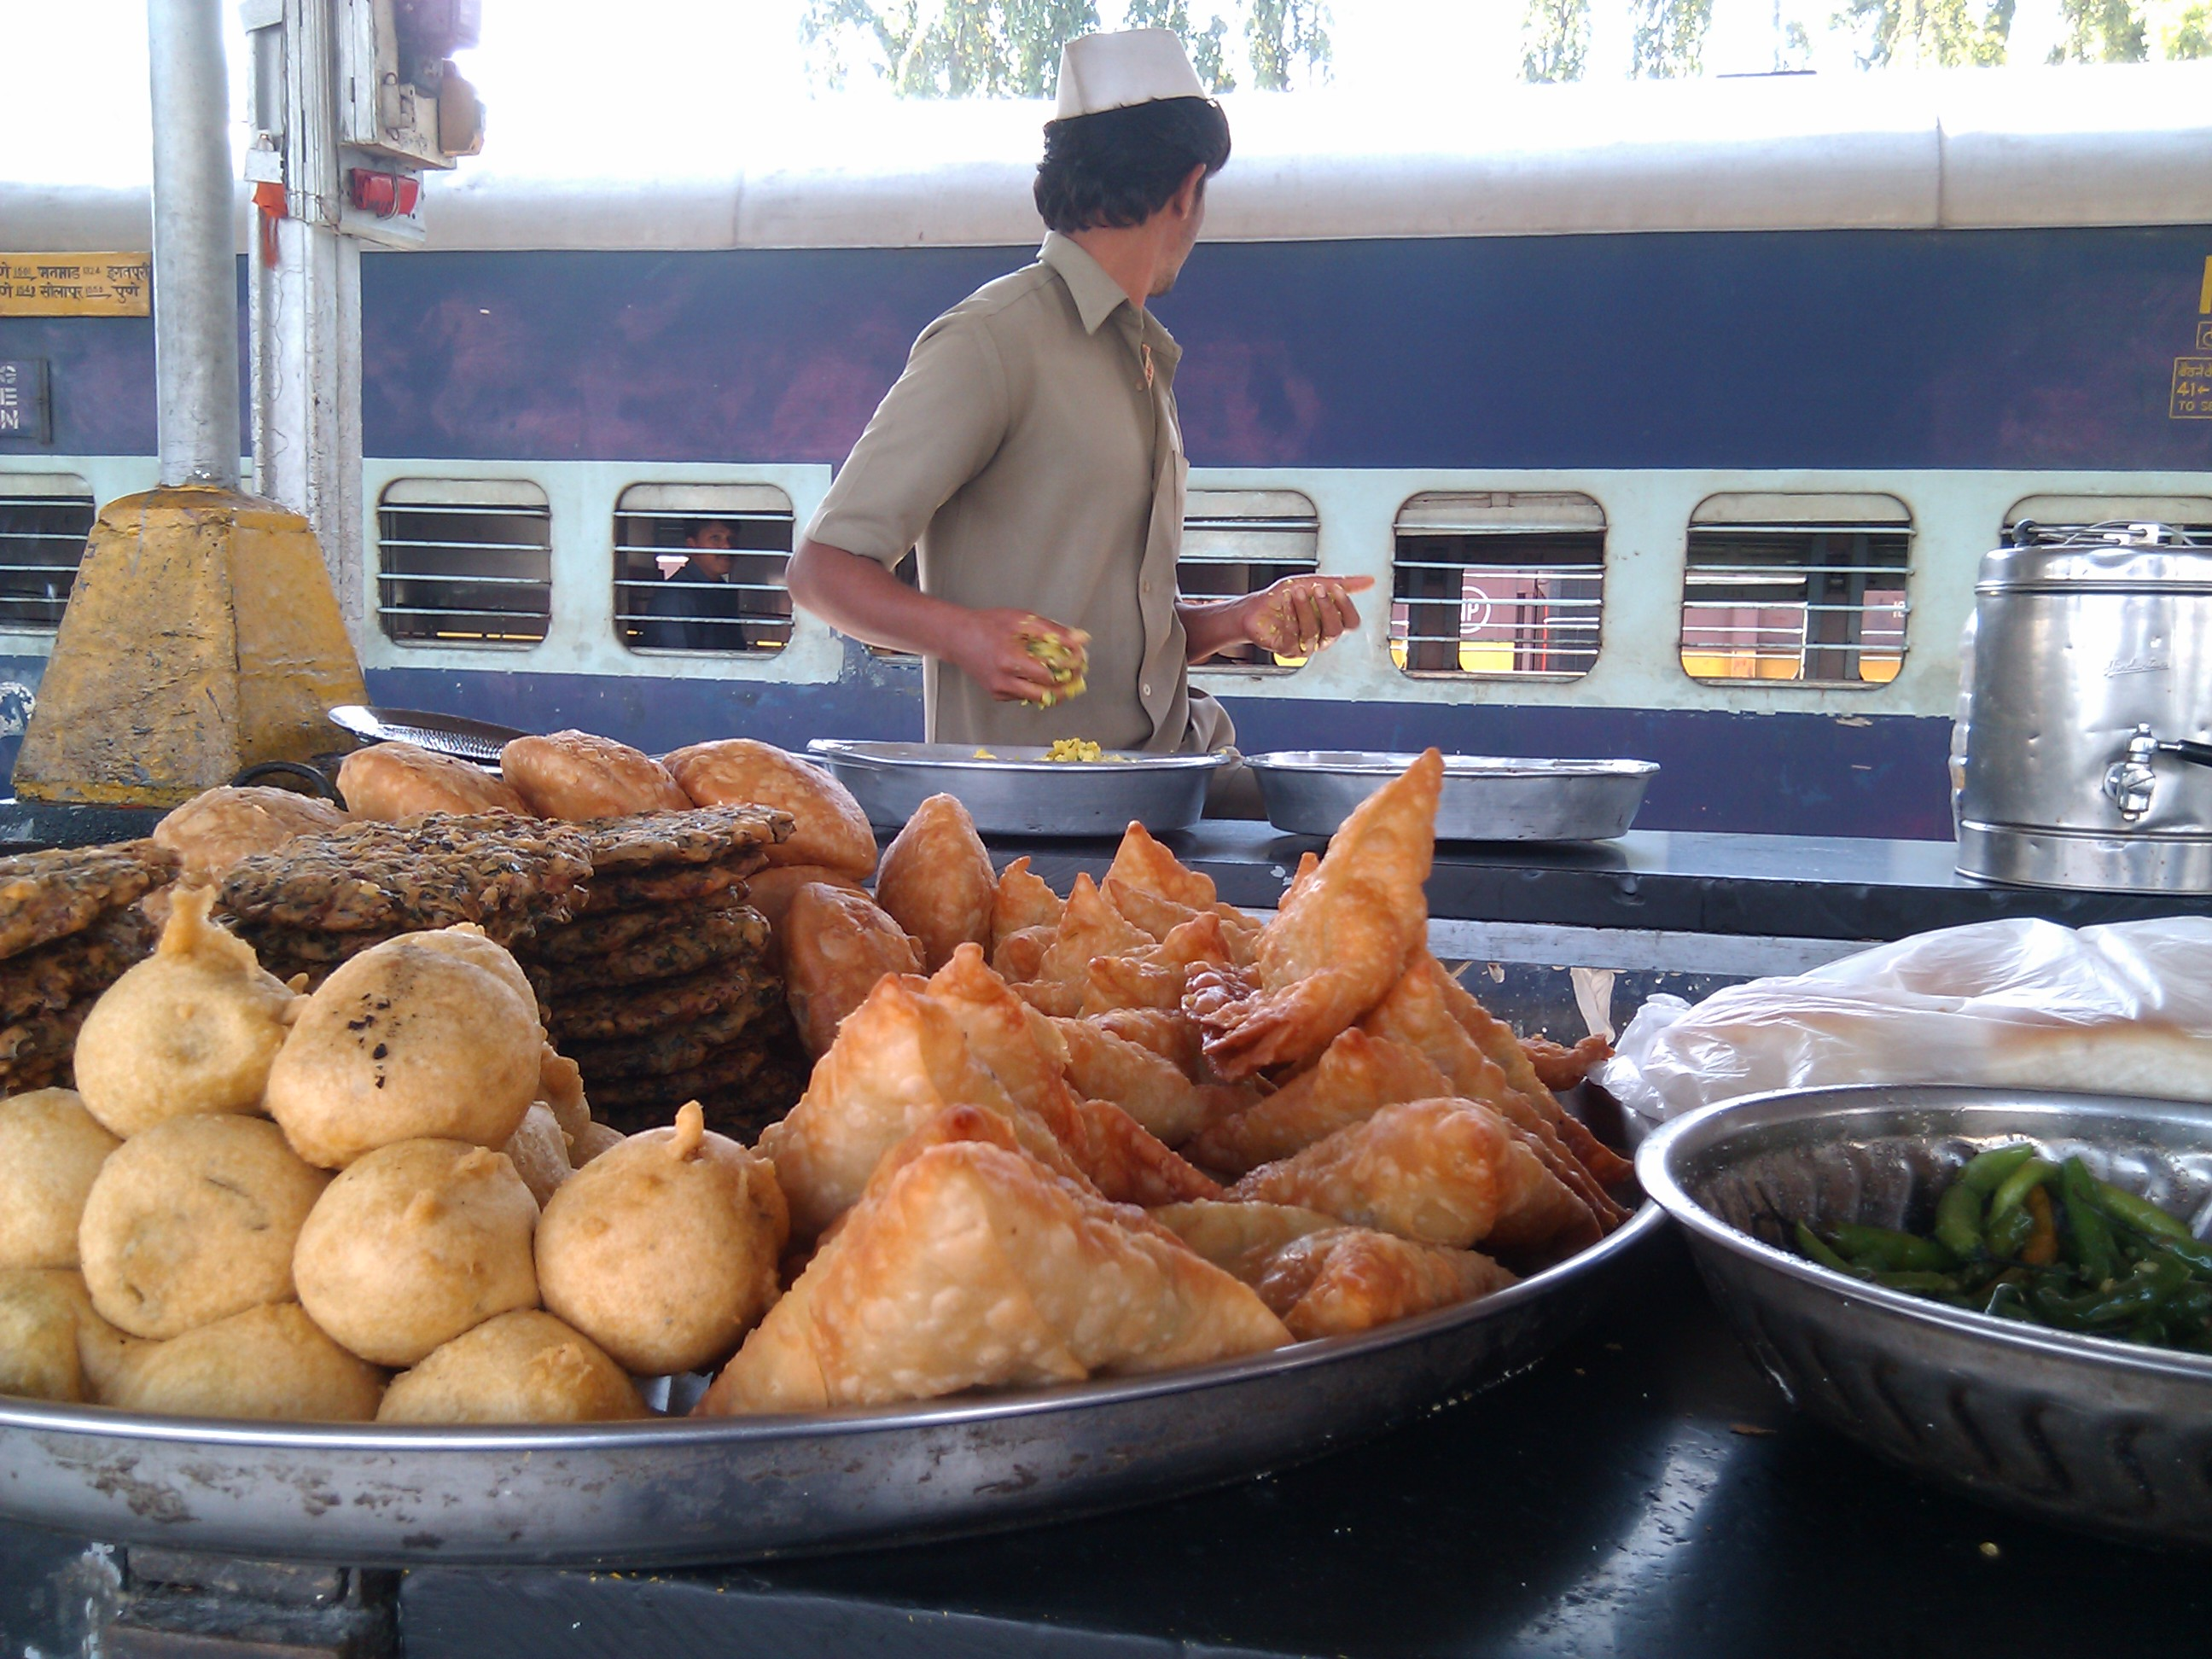 Enjoy hot food at your train berth. Just order before you reach Bhopal Station.